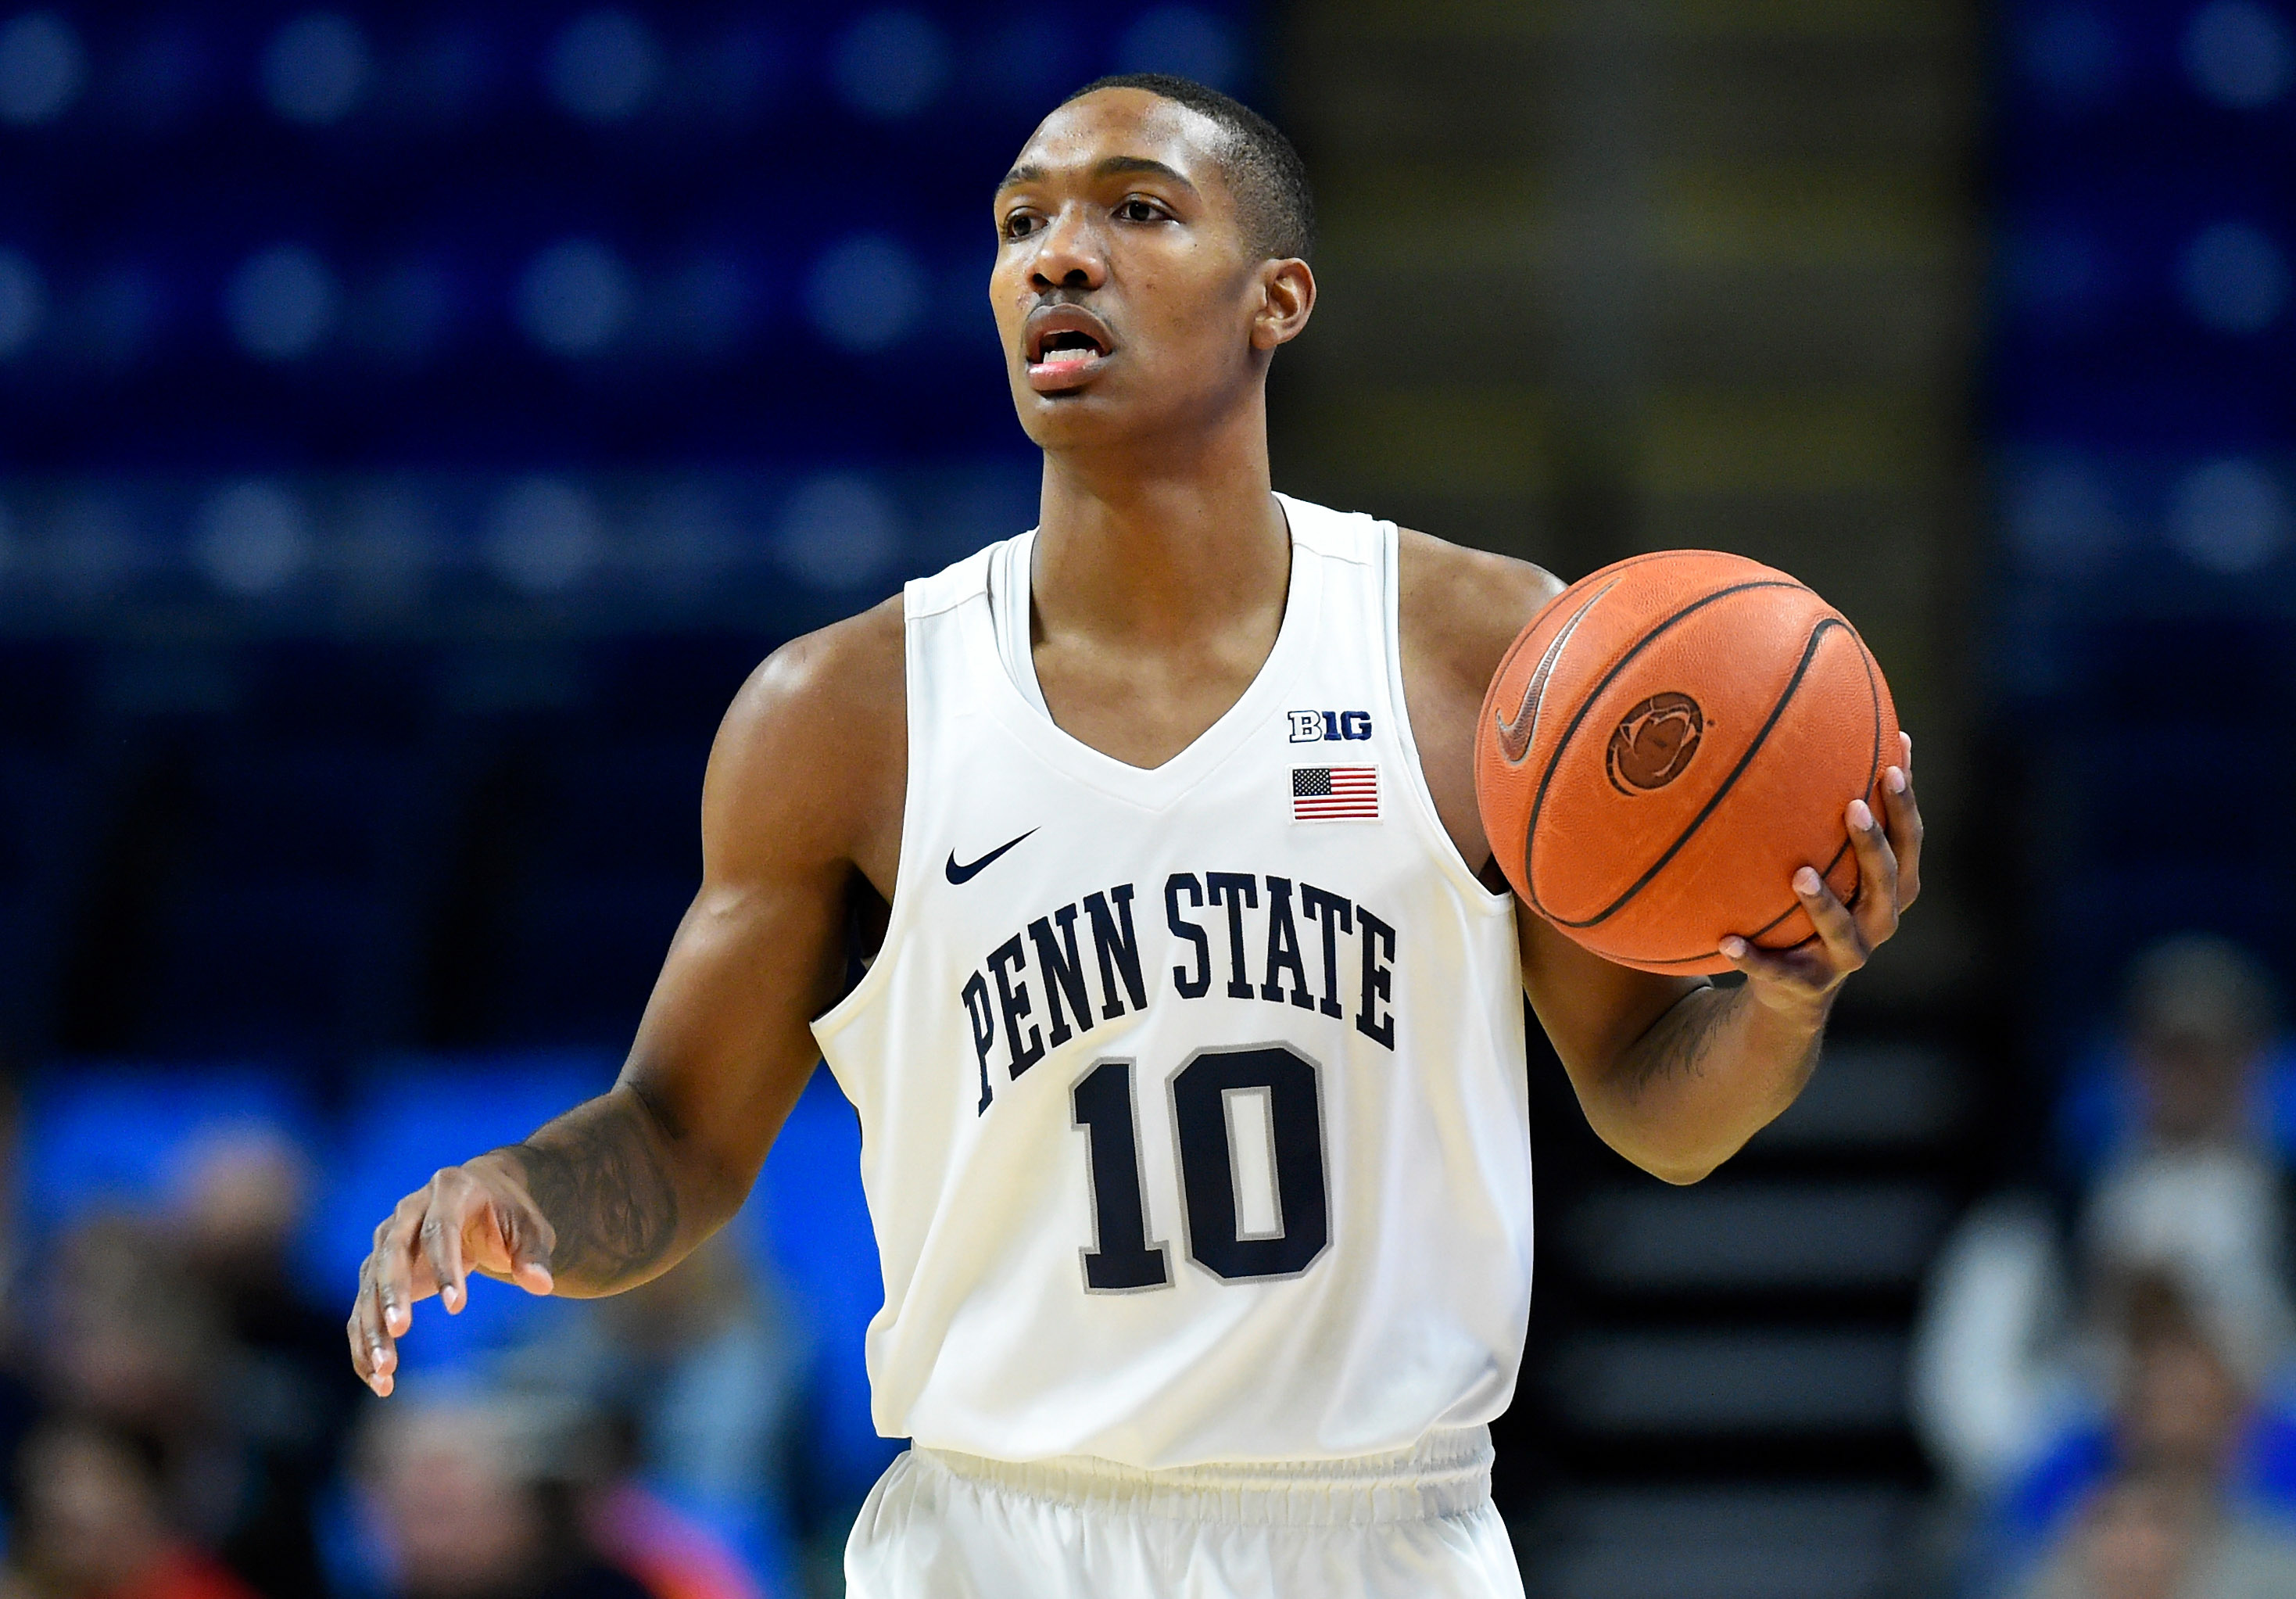 9775857-ncaa-basketball-northwestern-at-penn-state